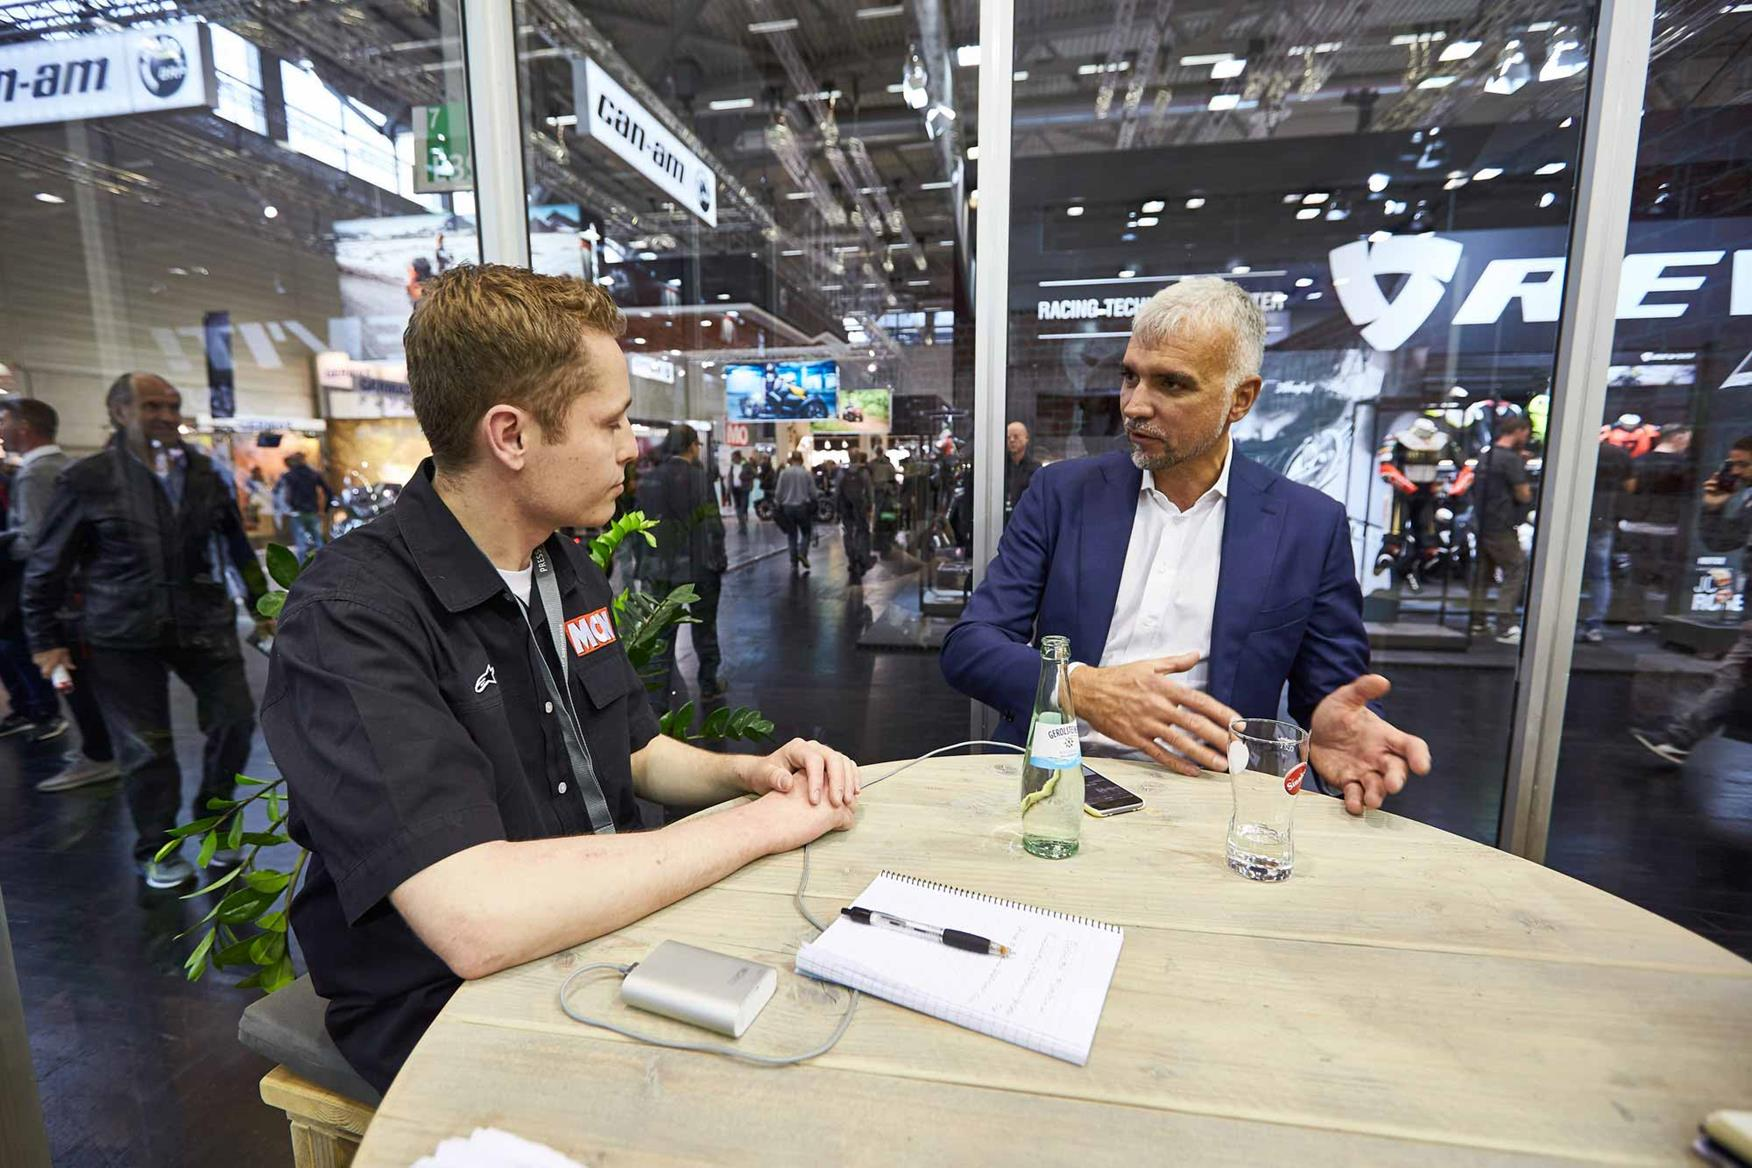 MCN's Dan Sutherland talks with Rodolfo Frascoli at Intermot